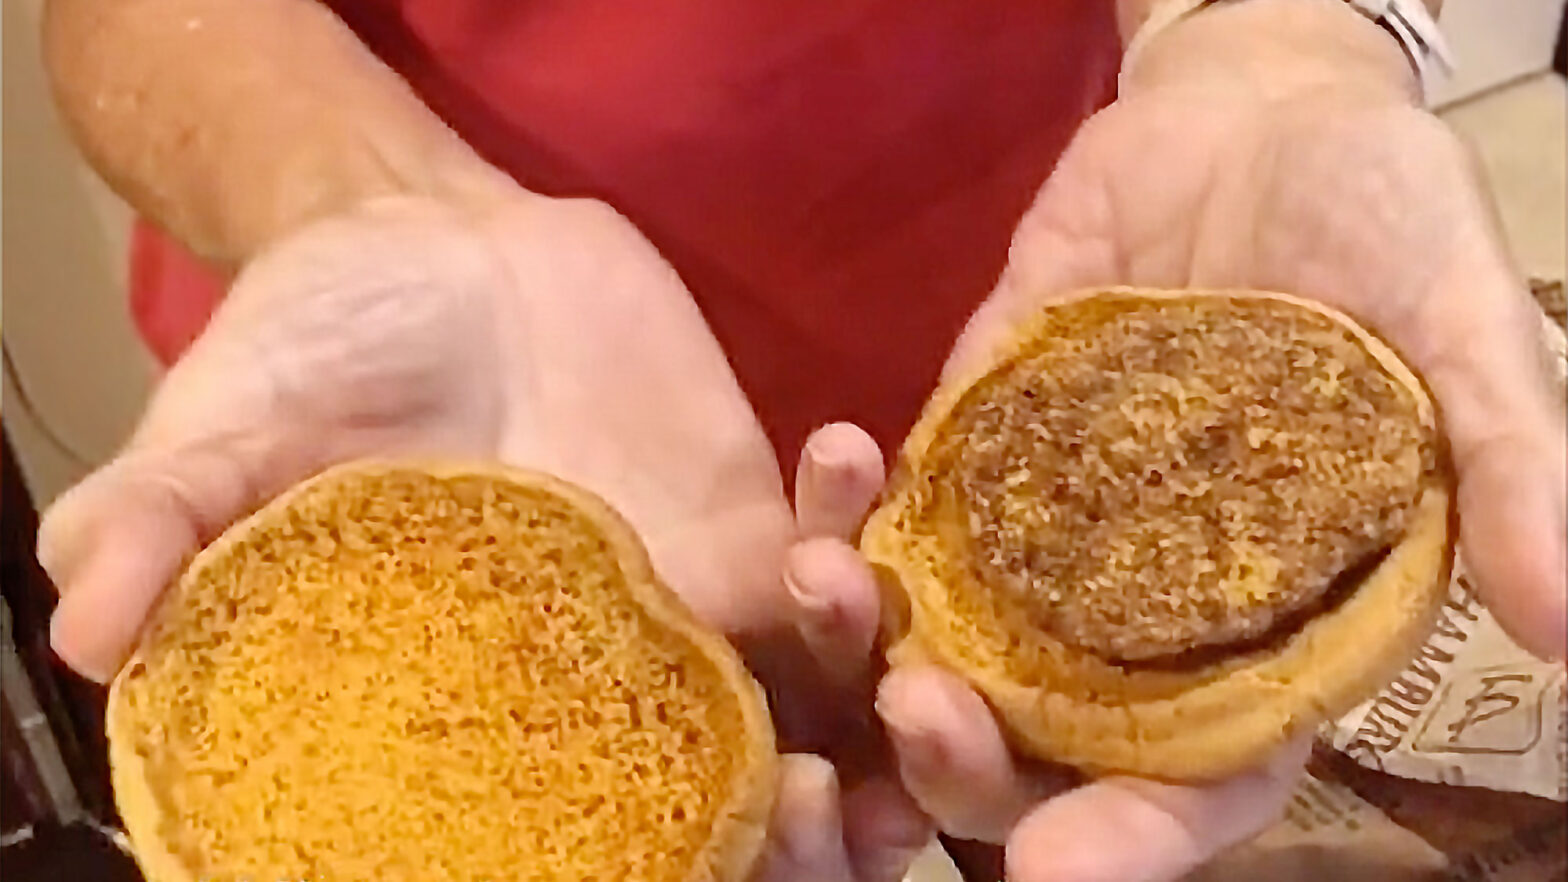 McDonald's Hamburger Kept for 24 Years Did Not Rot